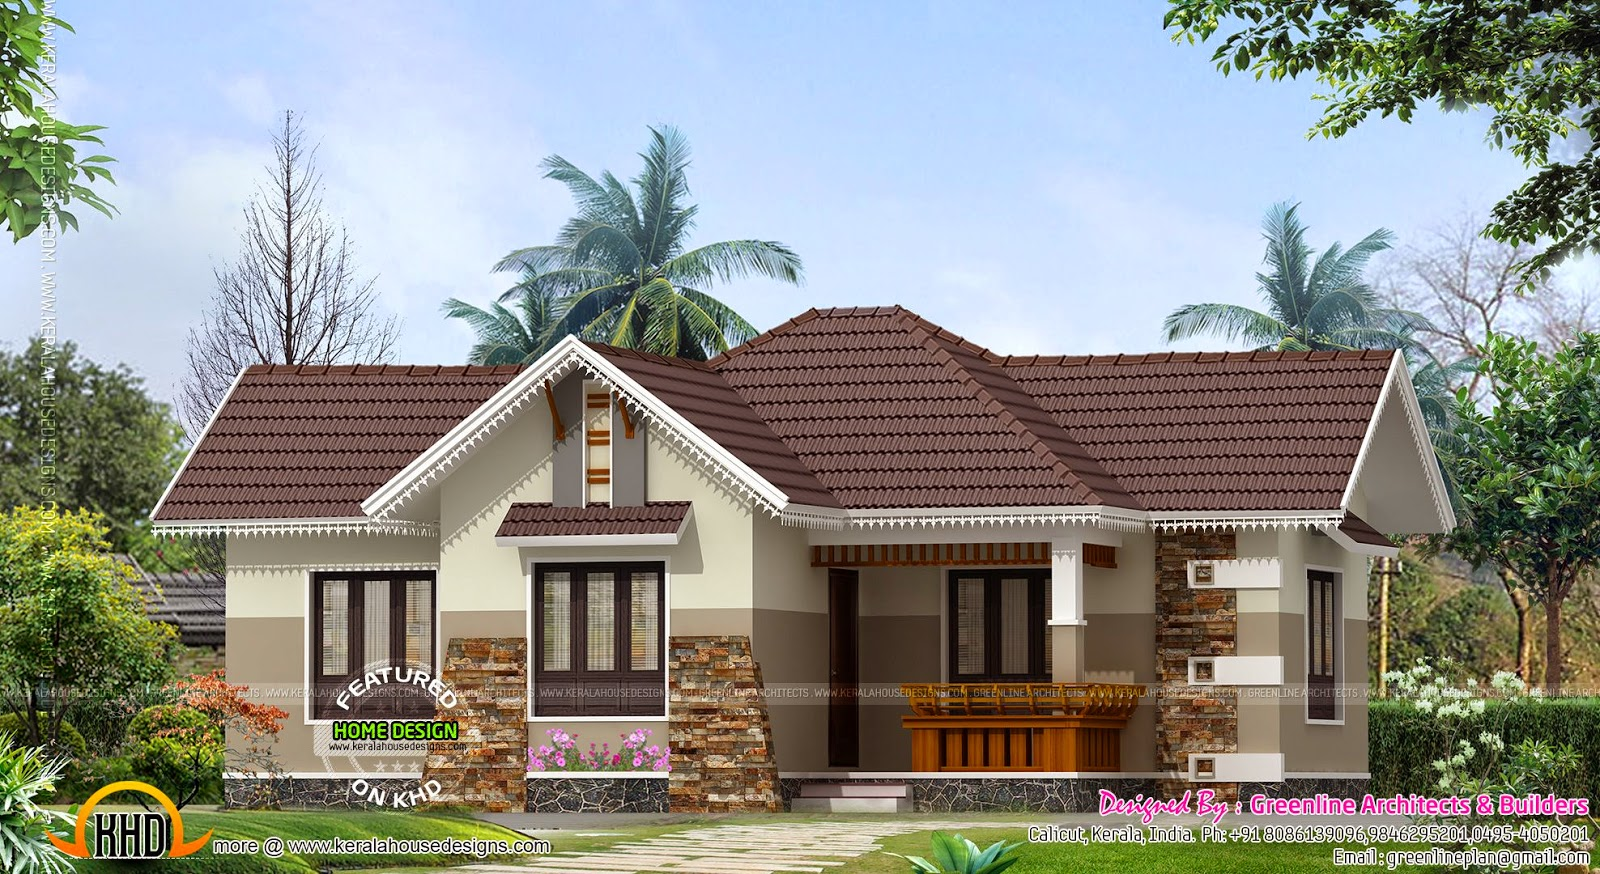 Nice small house exterior - Kerala home design and floor plans